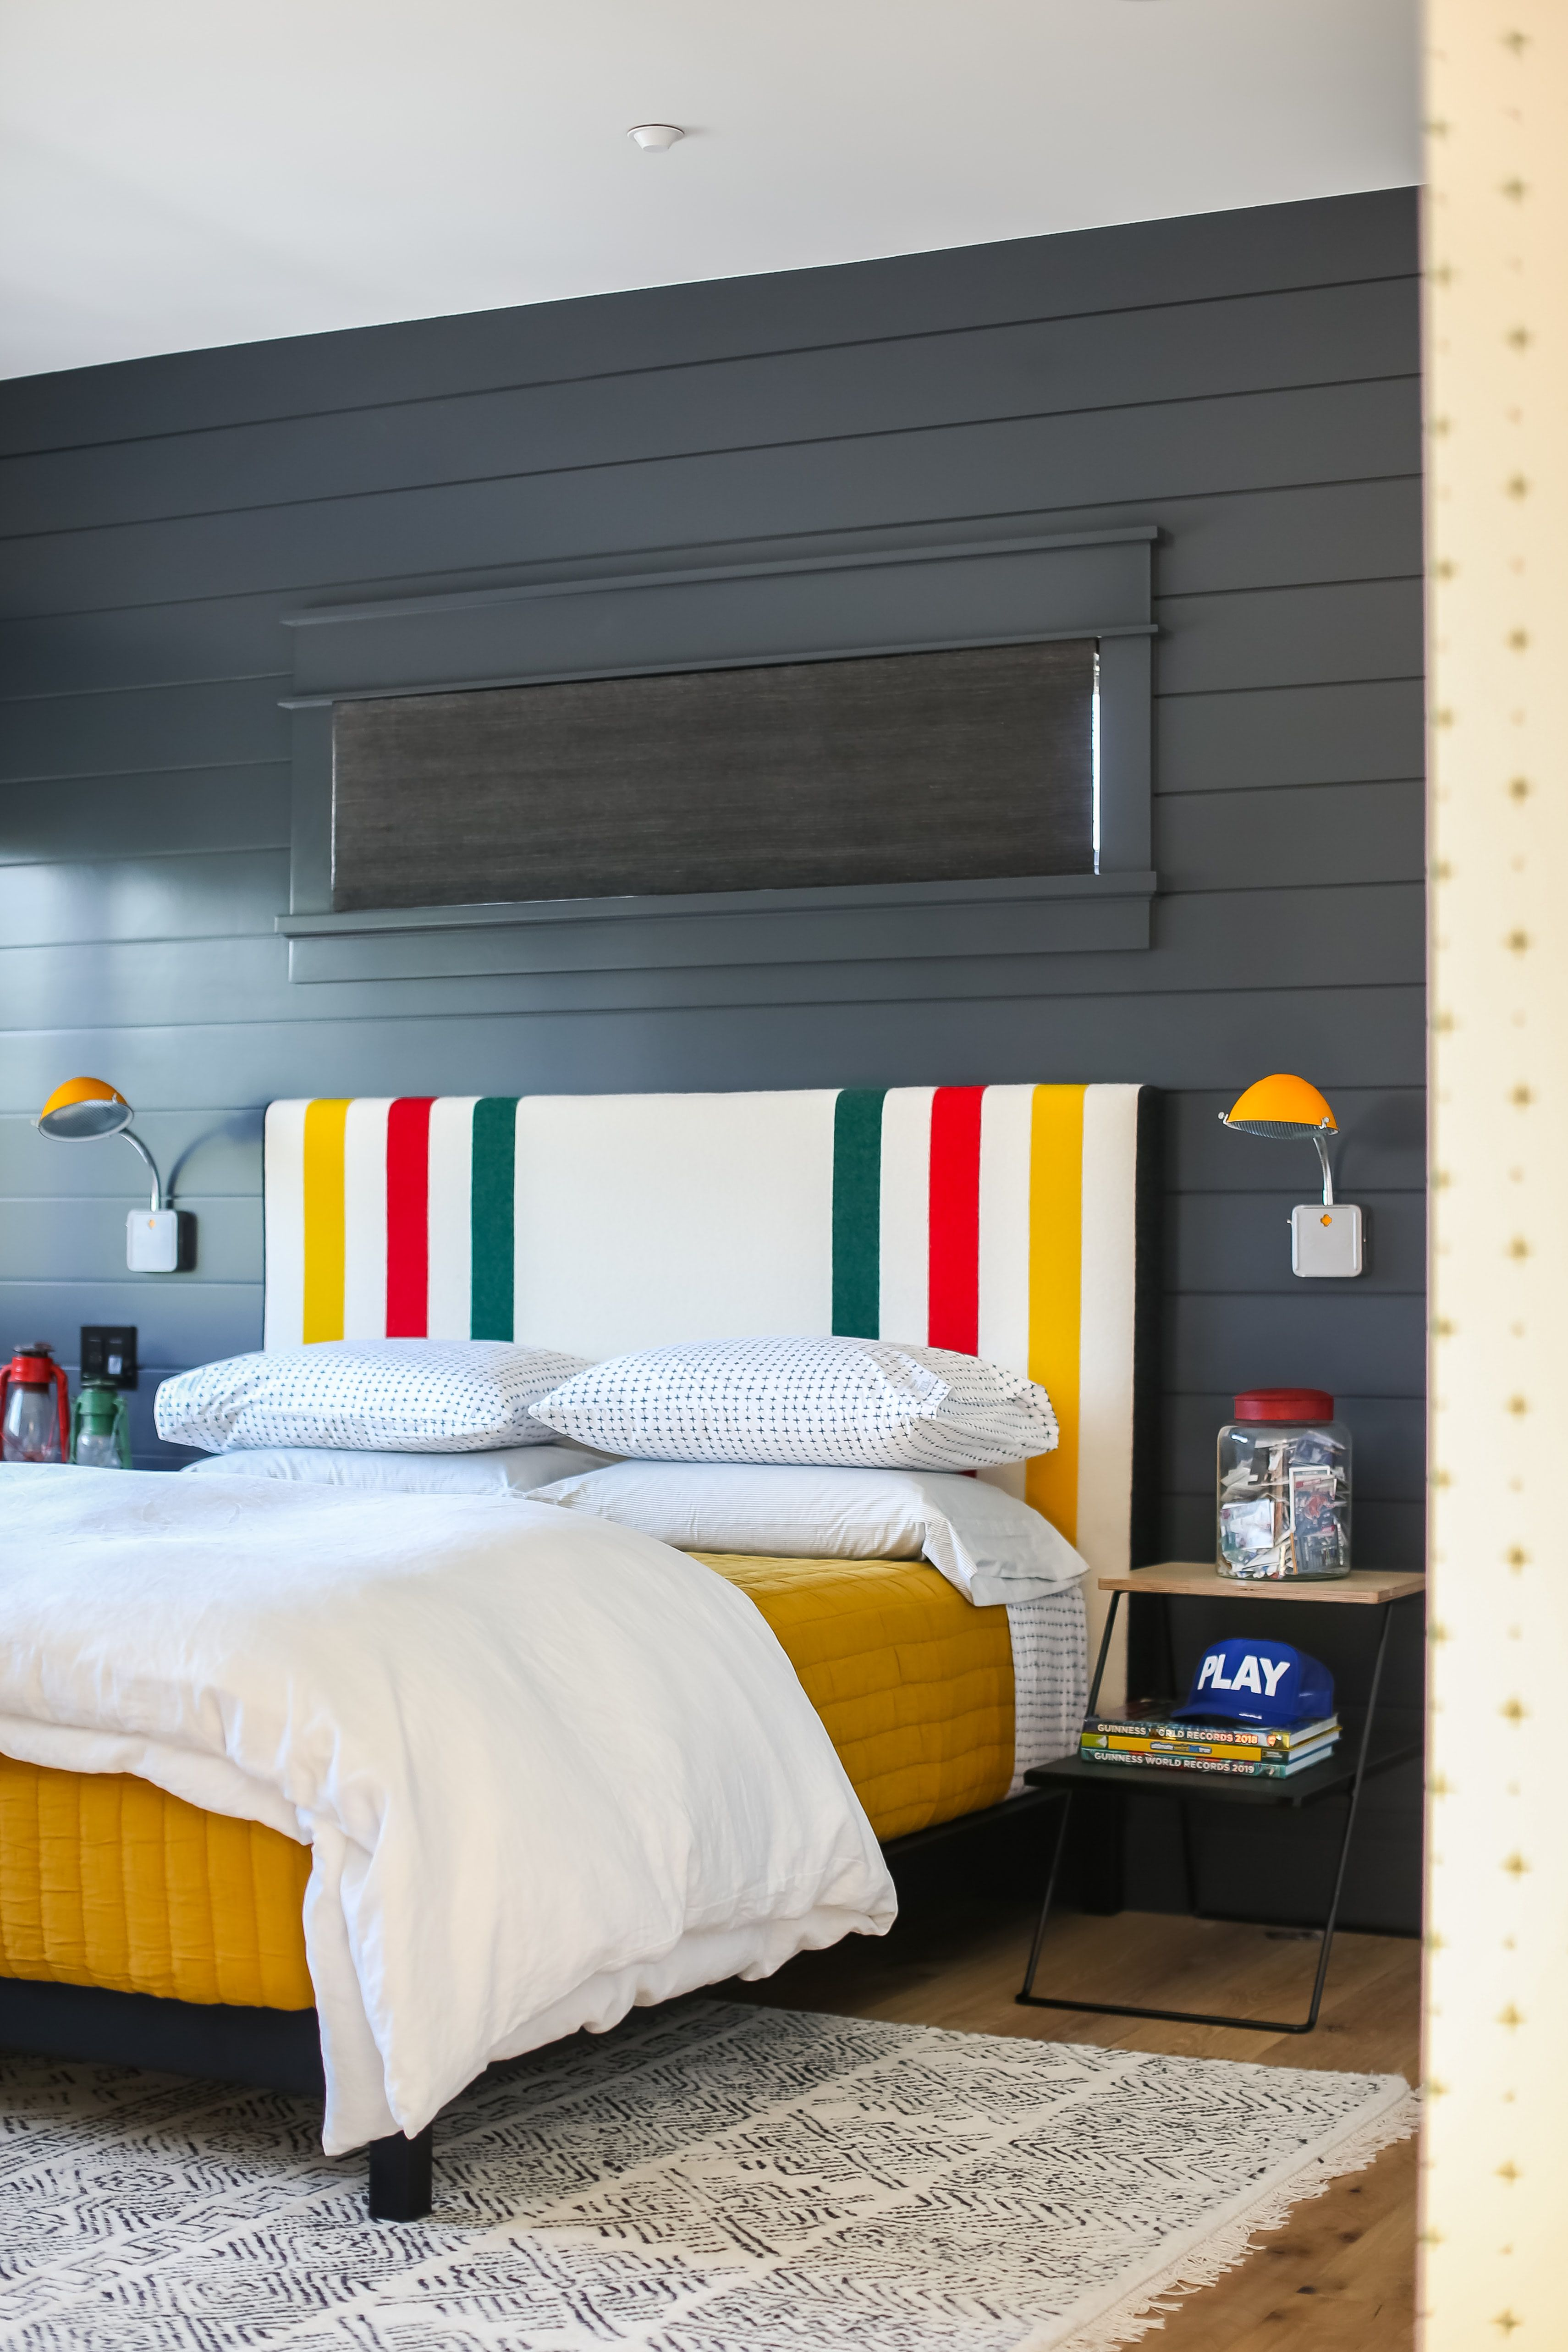 This Headboard Diy Only Requires 2 Things Headboard Designs Diy